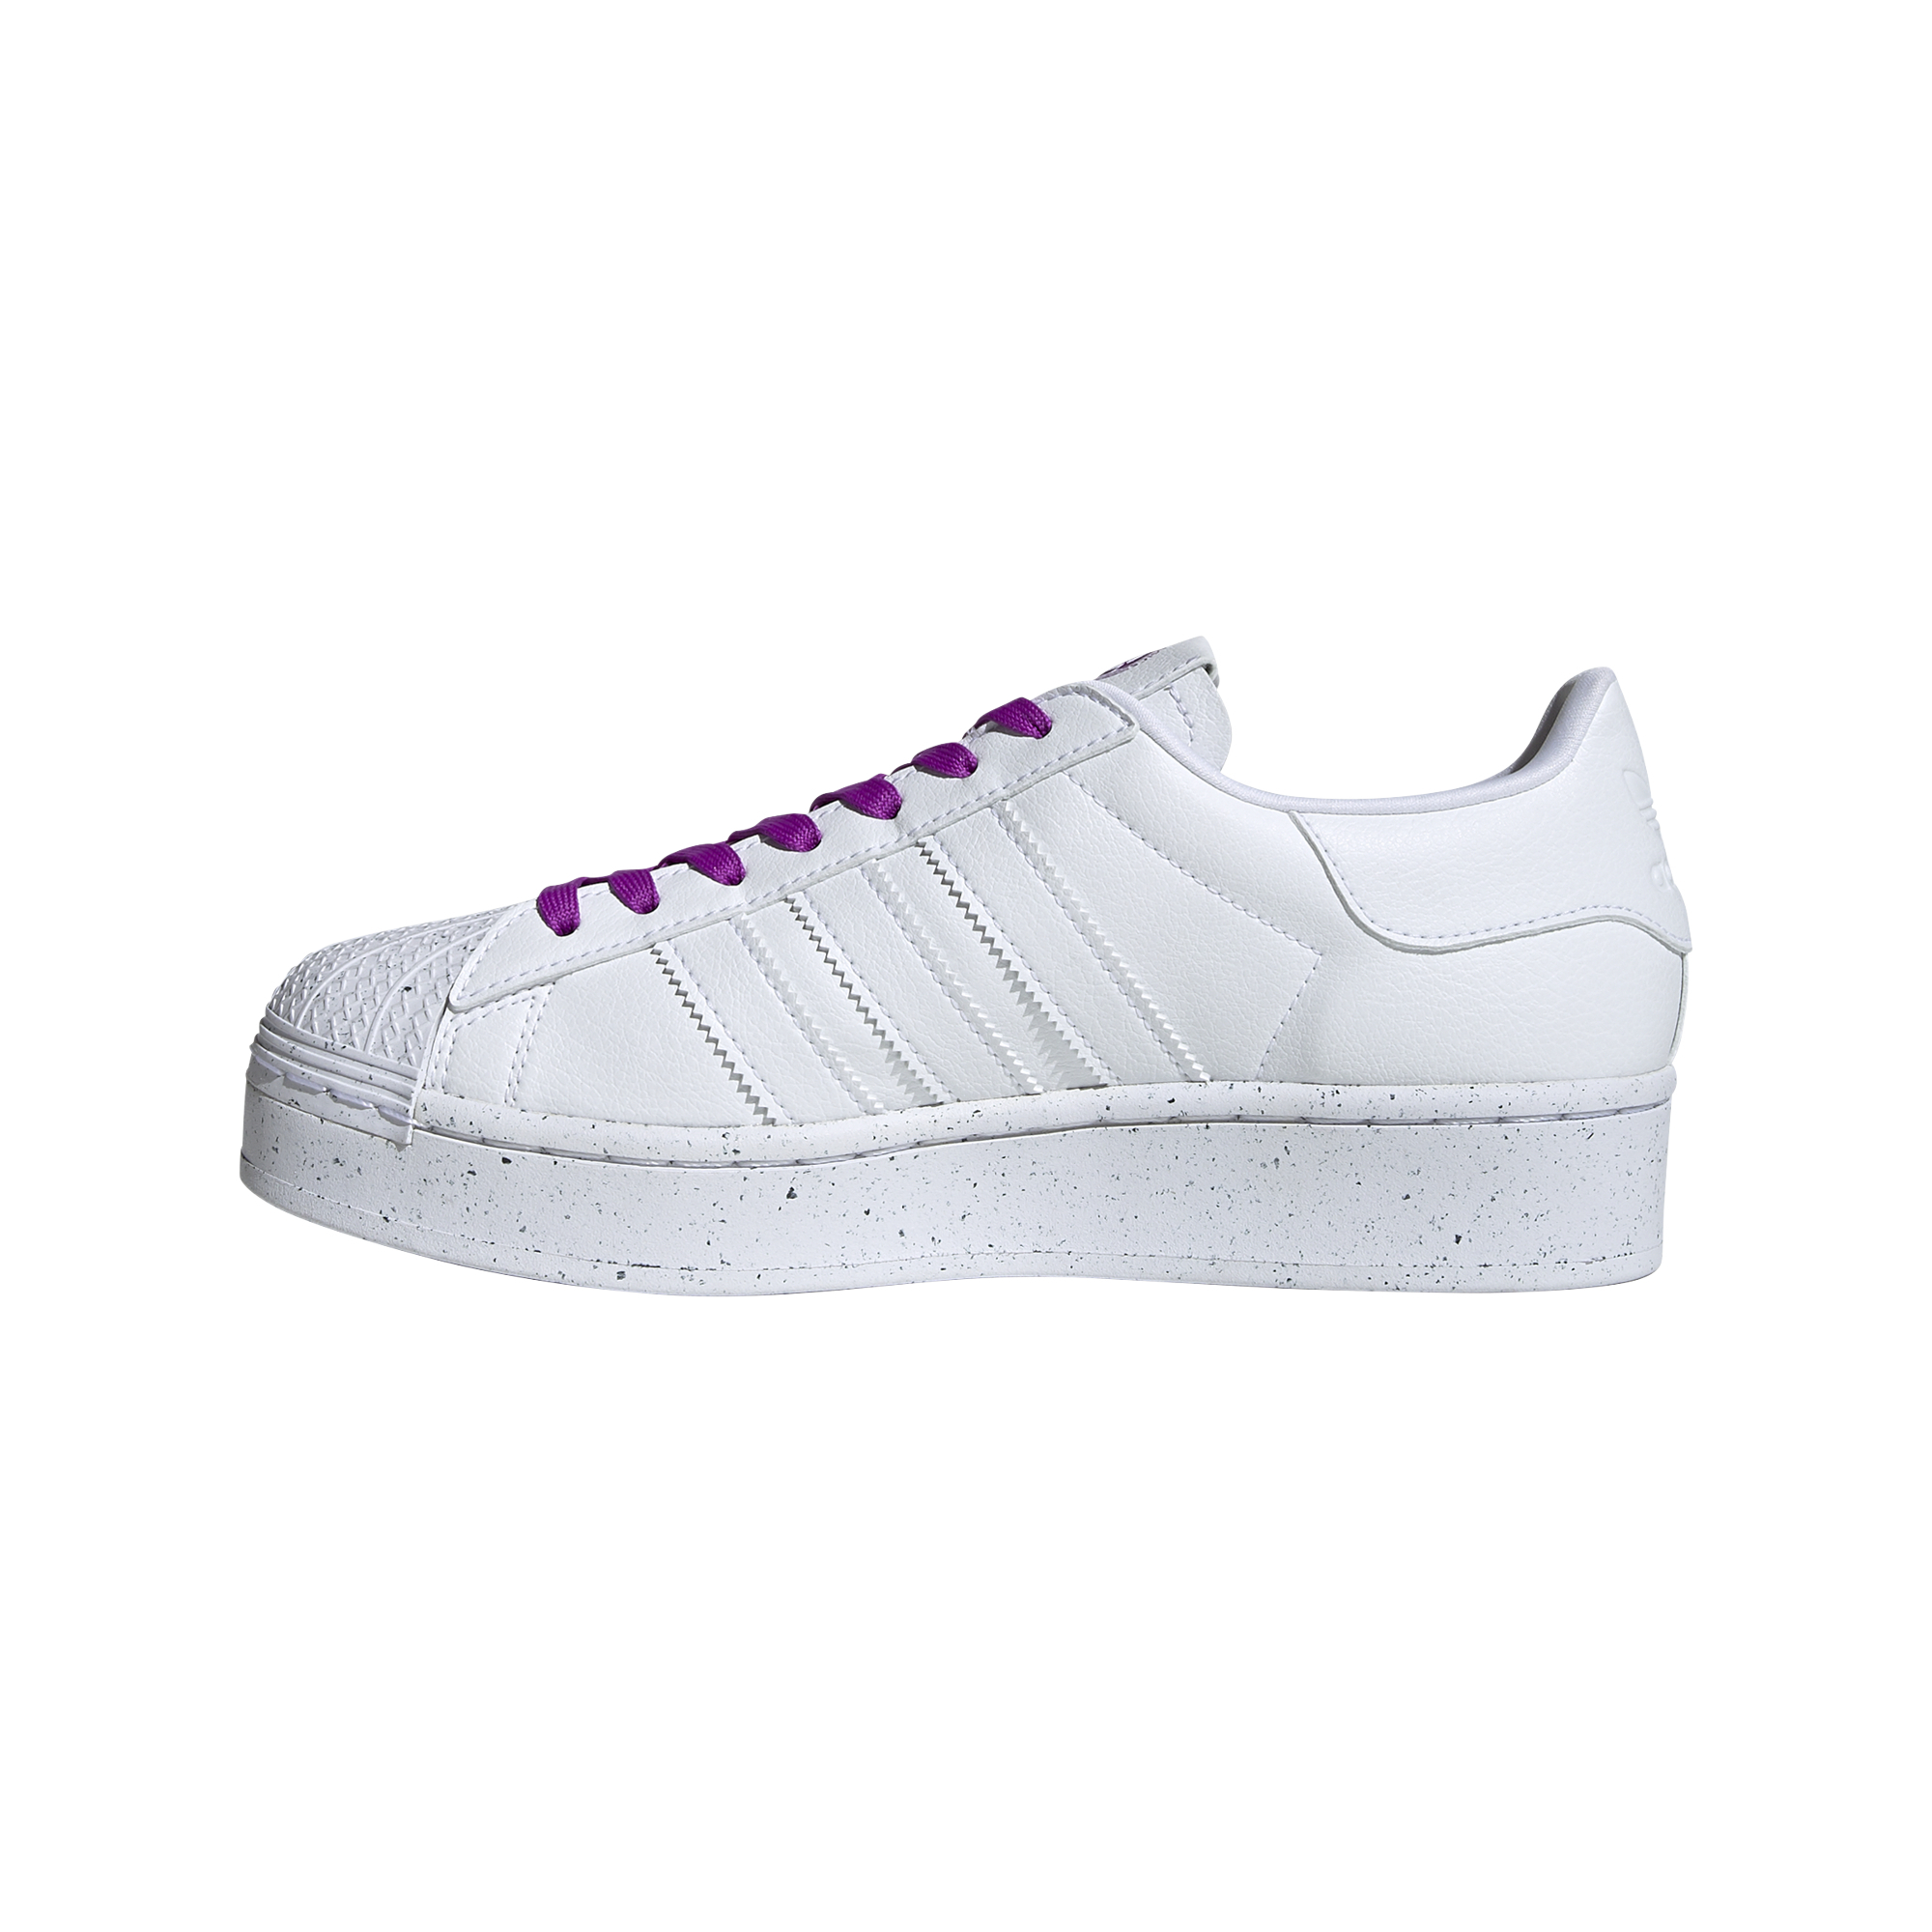 adidas Superstar Bold W Clean Classics Ftw White/ Ftw White/ Shock Purple EUR 40